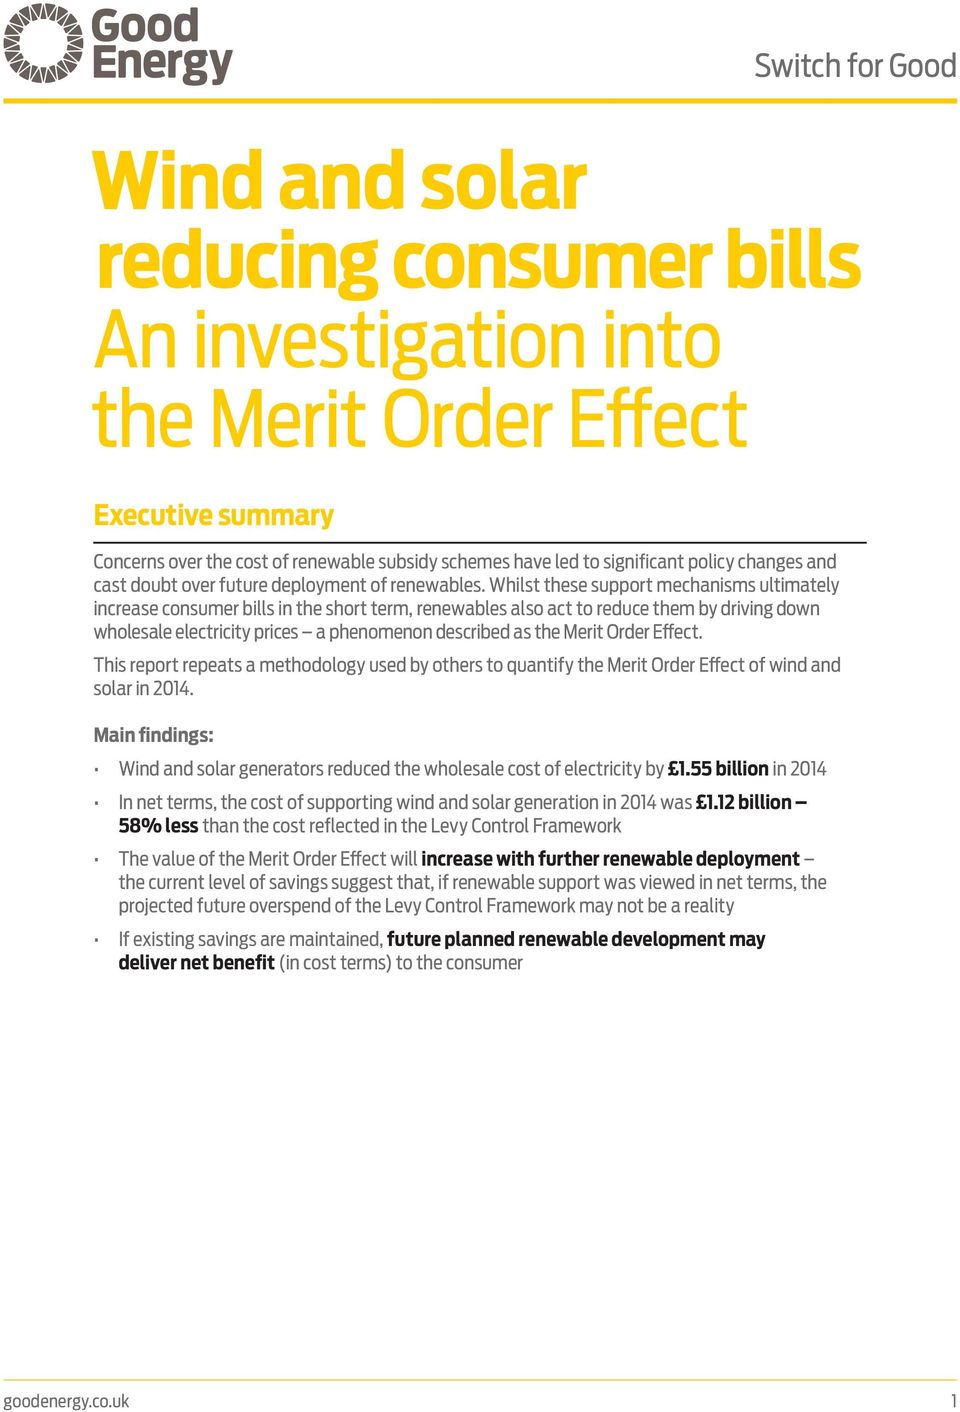 Whilst these support mechanisms ultimately increase consumer bills in the short term, renewables also act to reduce them by driving down wholesale electricity prices a phenomenon described as the